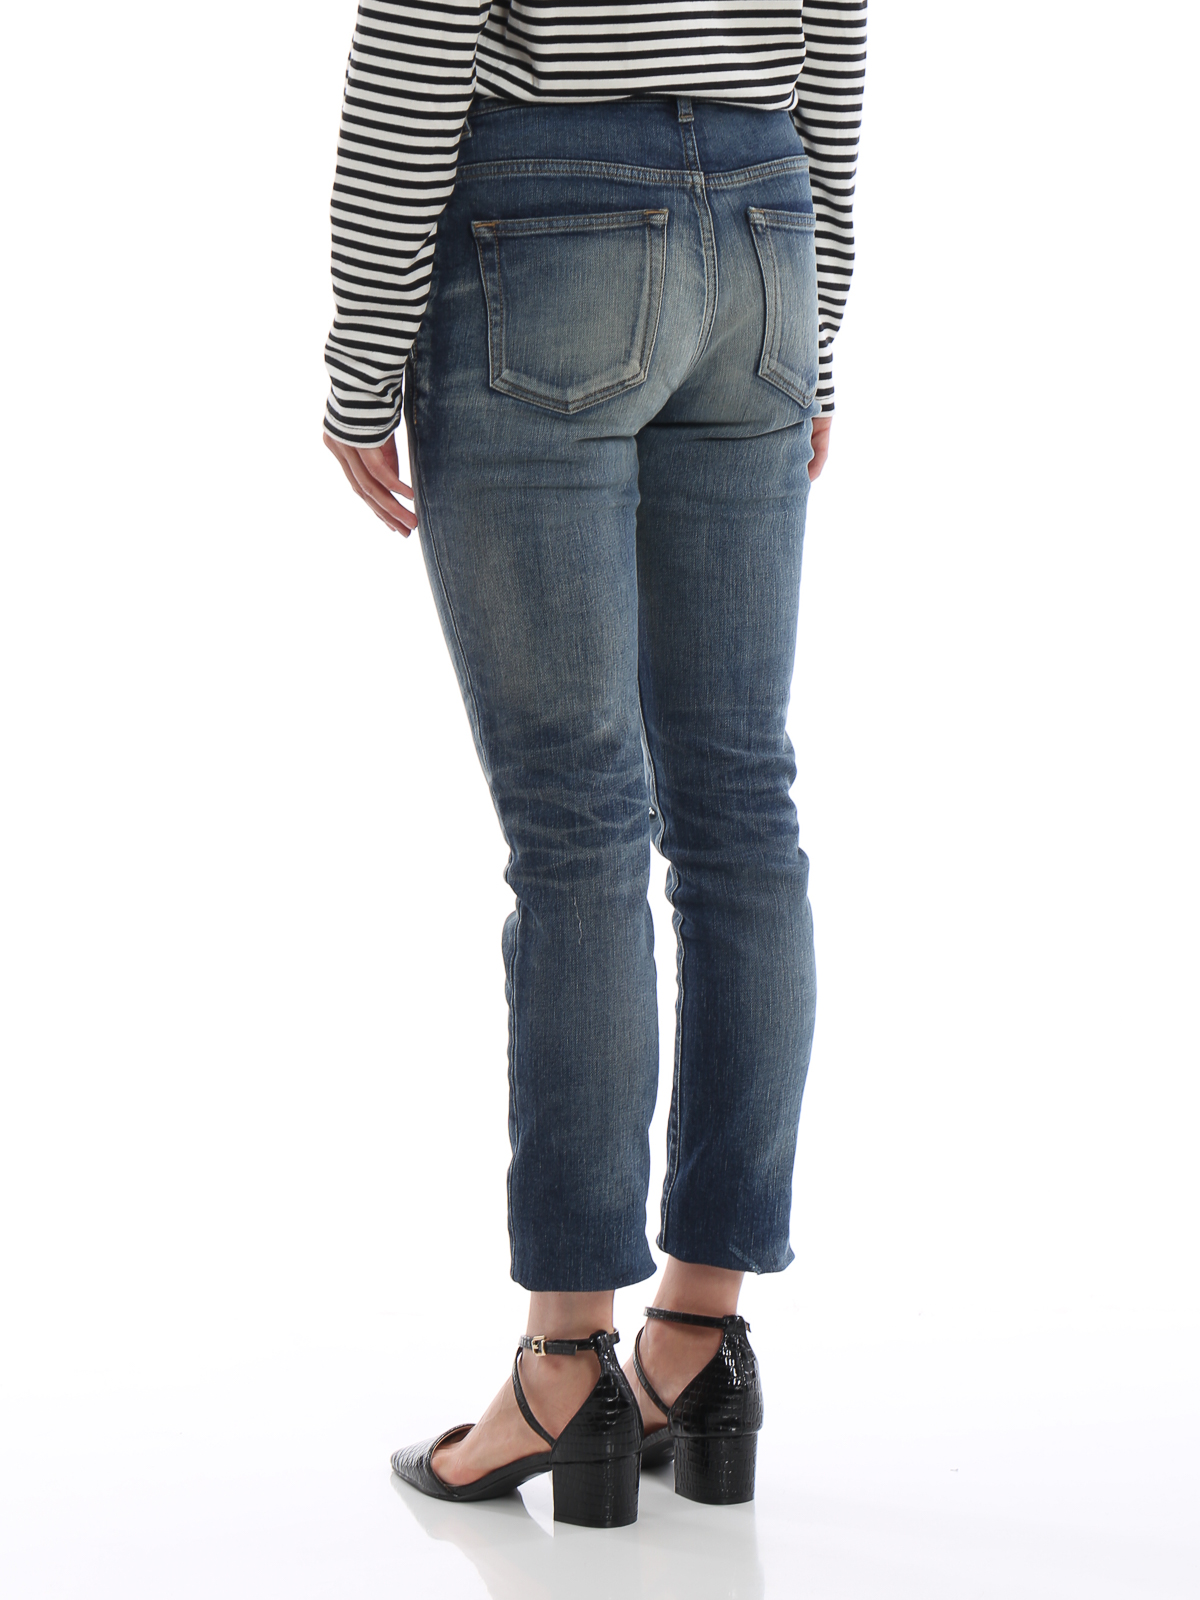 1189a394a01f Saint Laurent - Medium waist worn out stone washed jeans - skinny ...